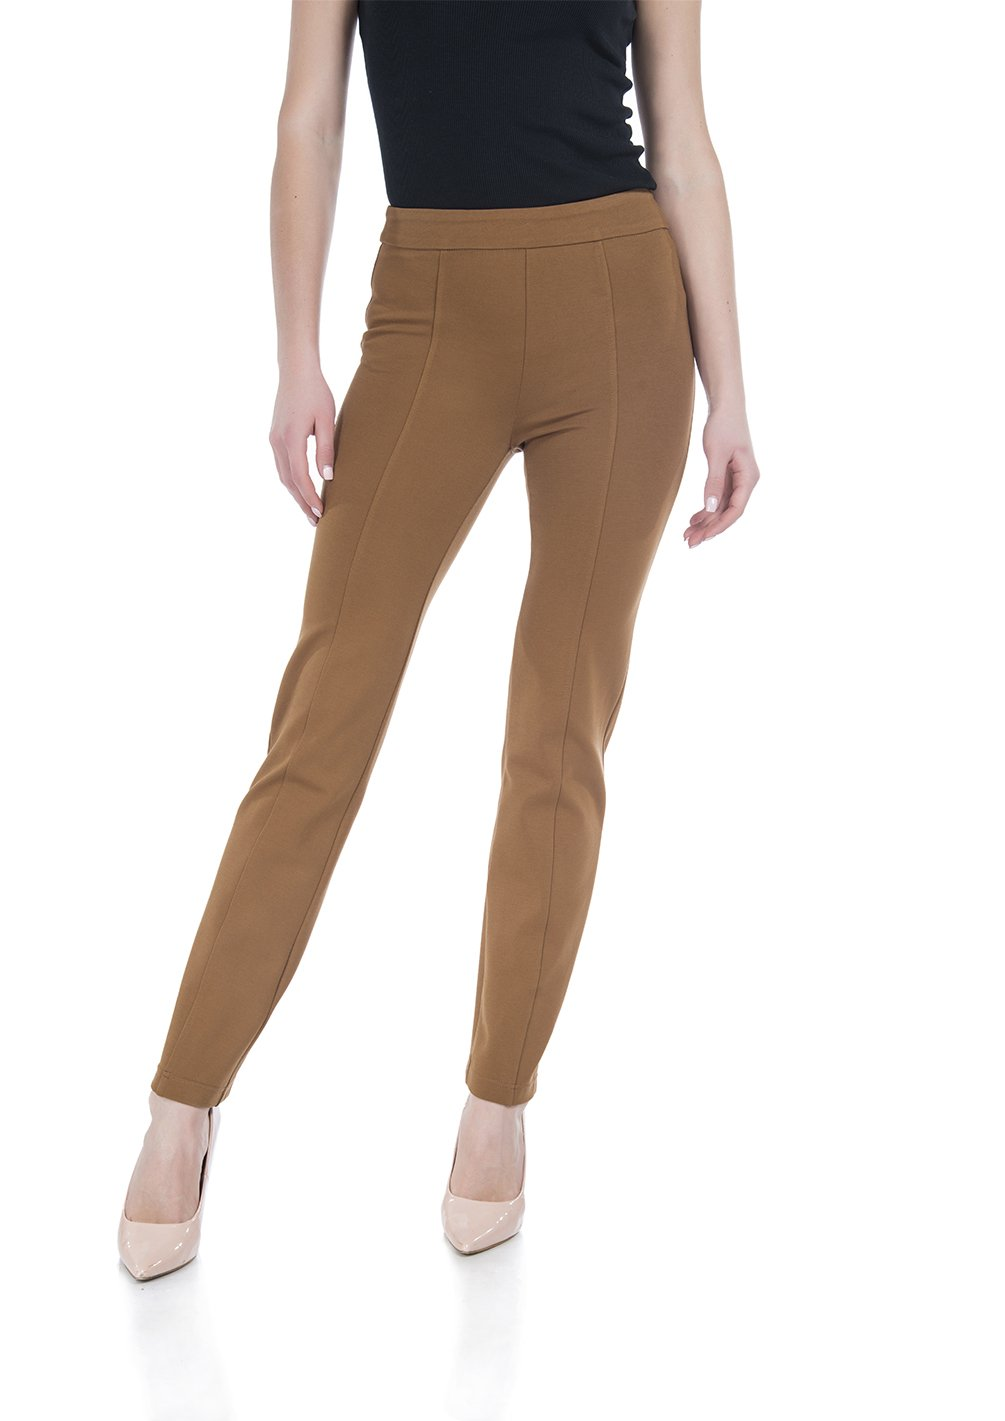 Soshow Women Pull On Rayon Pants Ladies Elastic Waist Bootcut Straight Leg Trousers Stretch Comfy Pants for Work